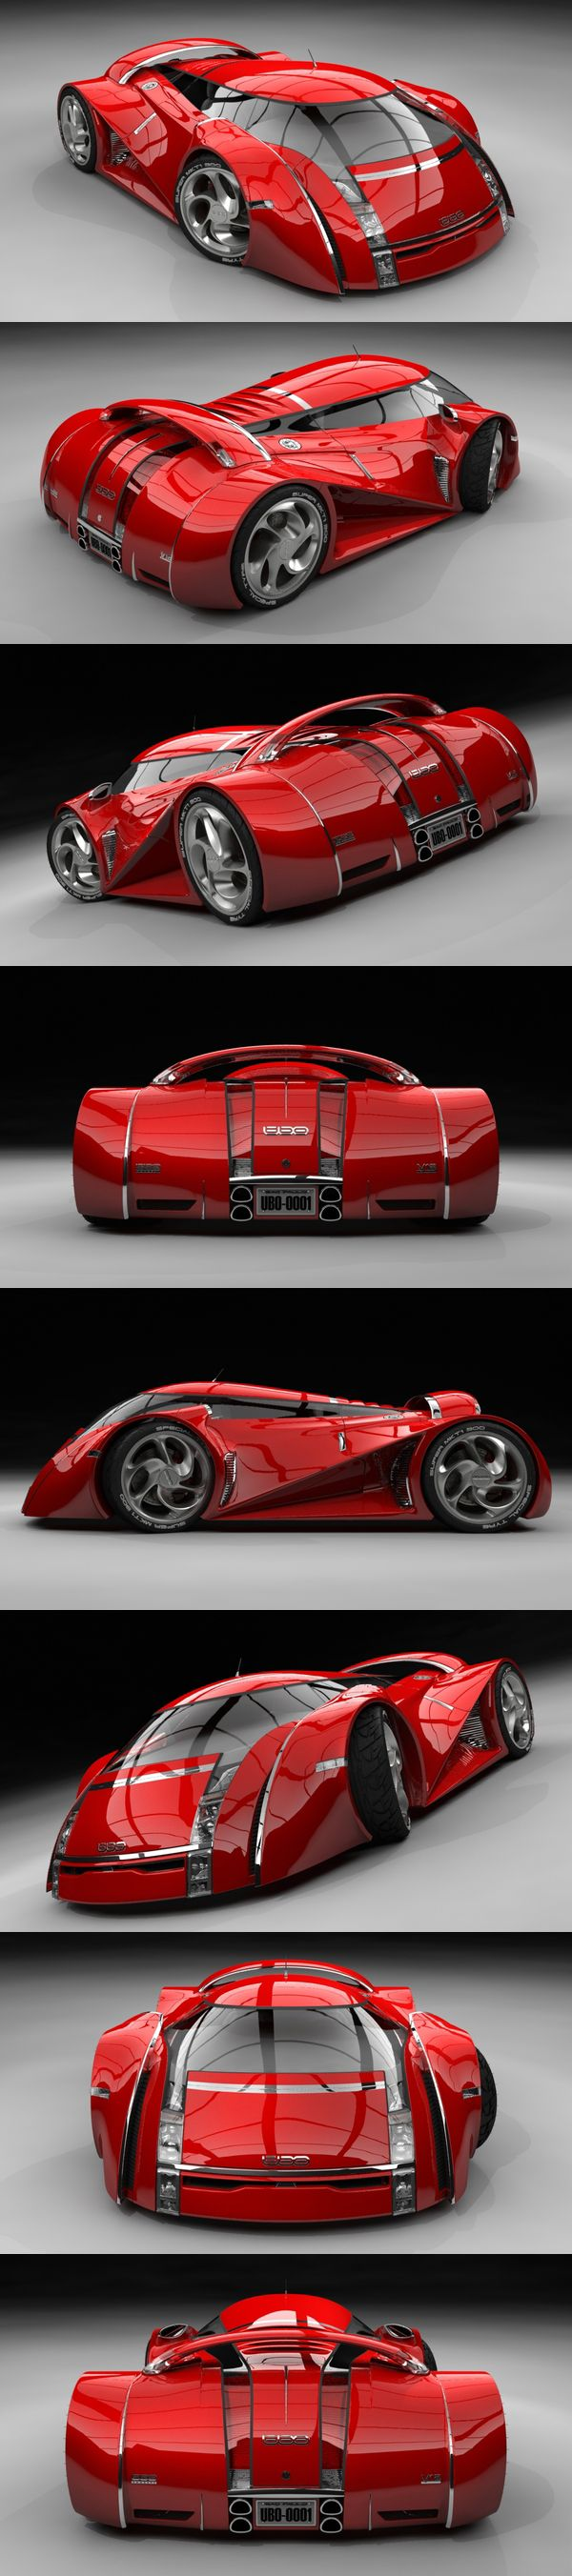 Darvin Silva The Ubo Concept Car Concept Cars Super Cars Cool Cars